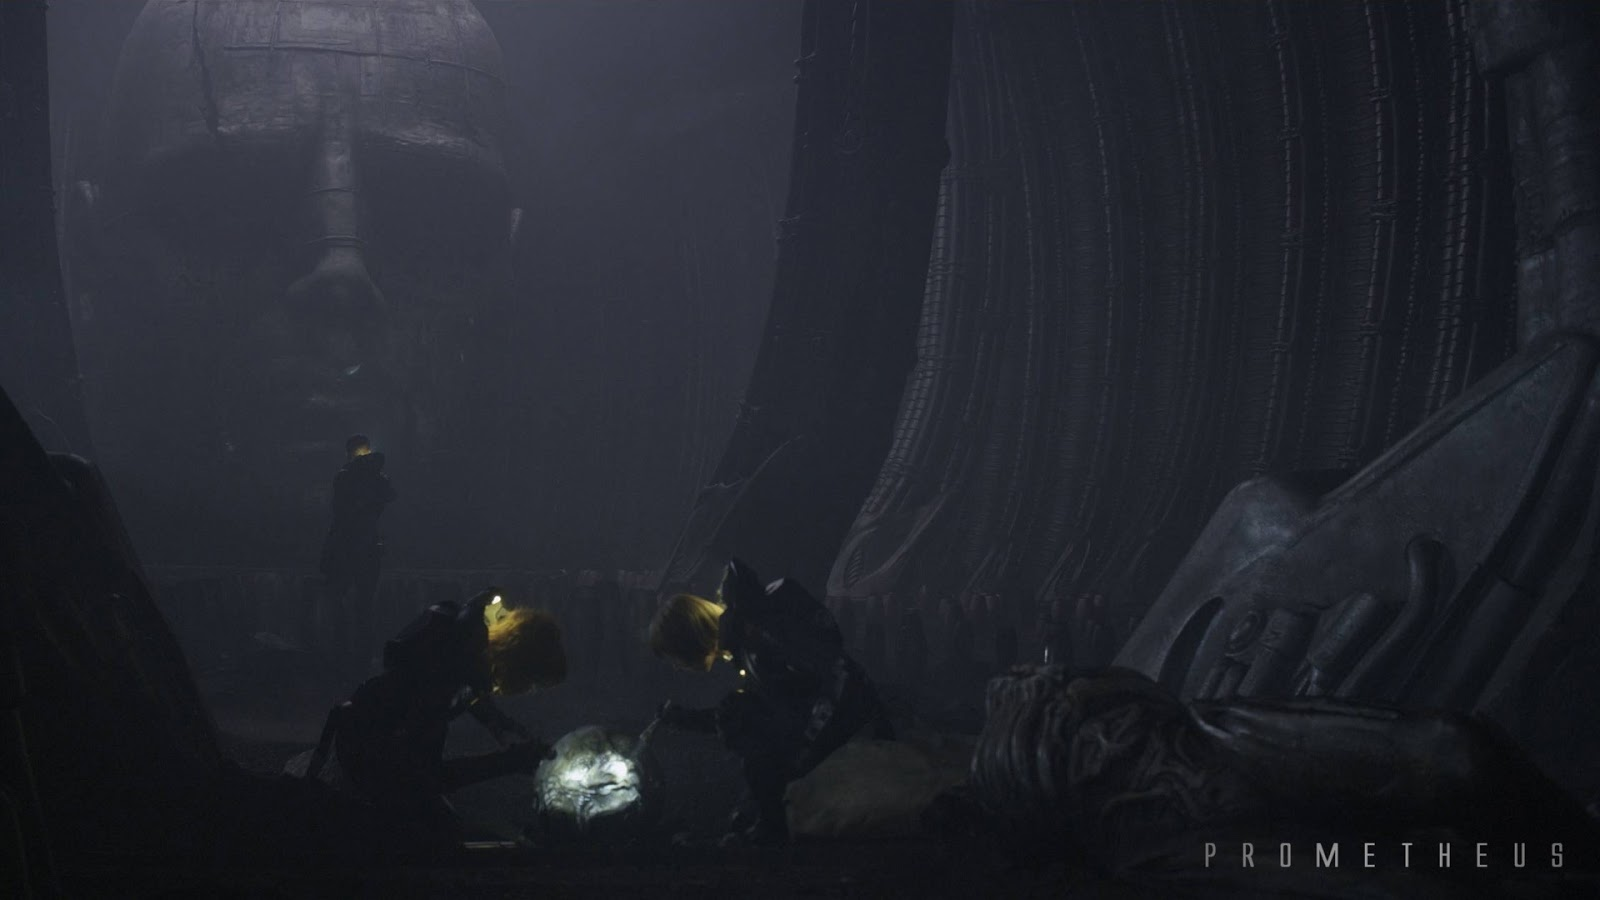 Prometheus wallpaper prometheus 2012 hd movie wallpaper